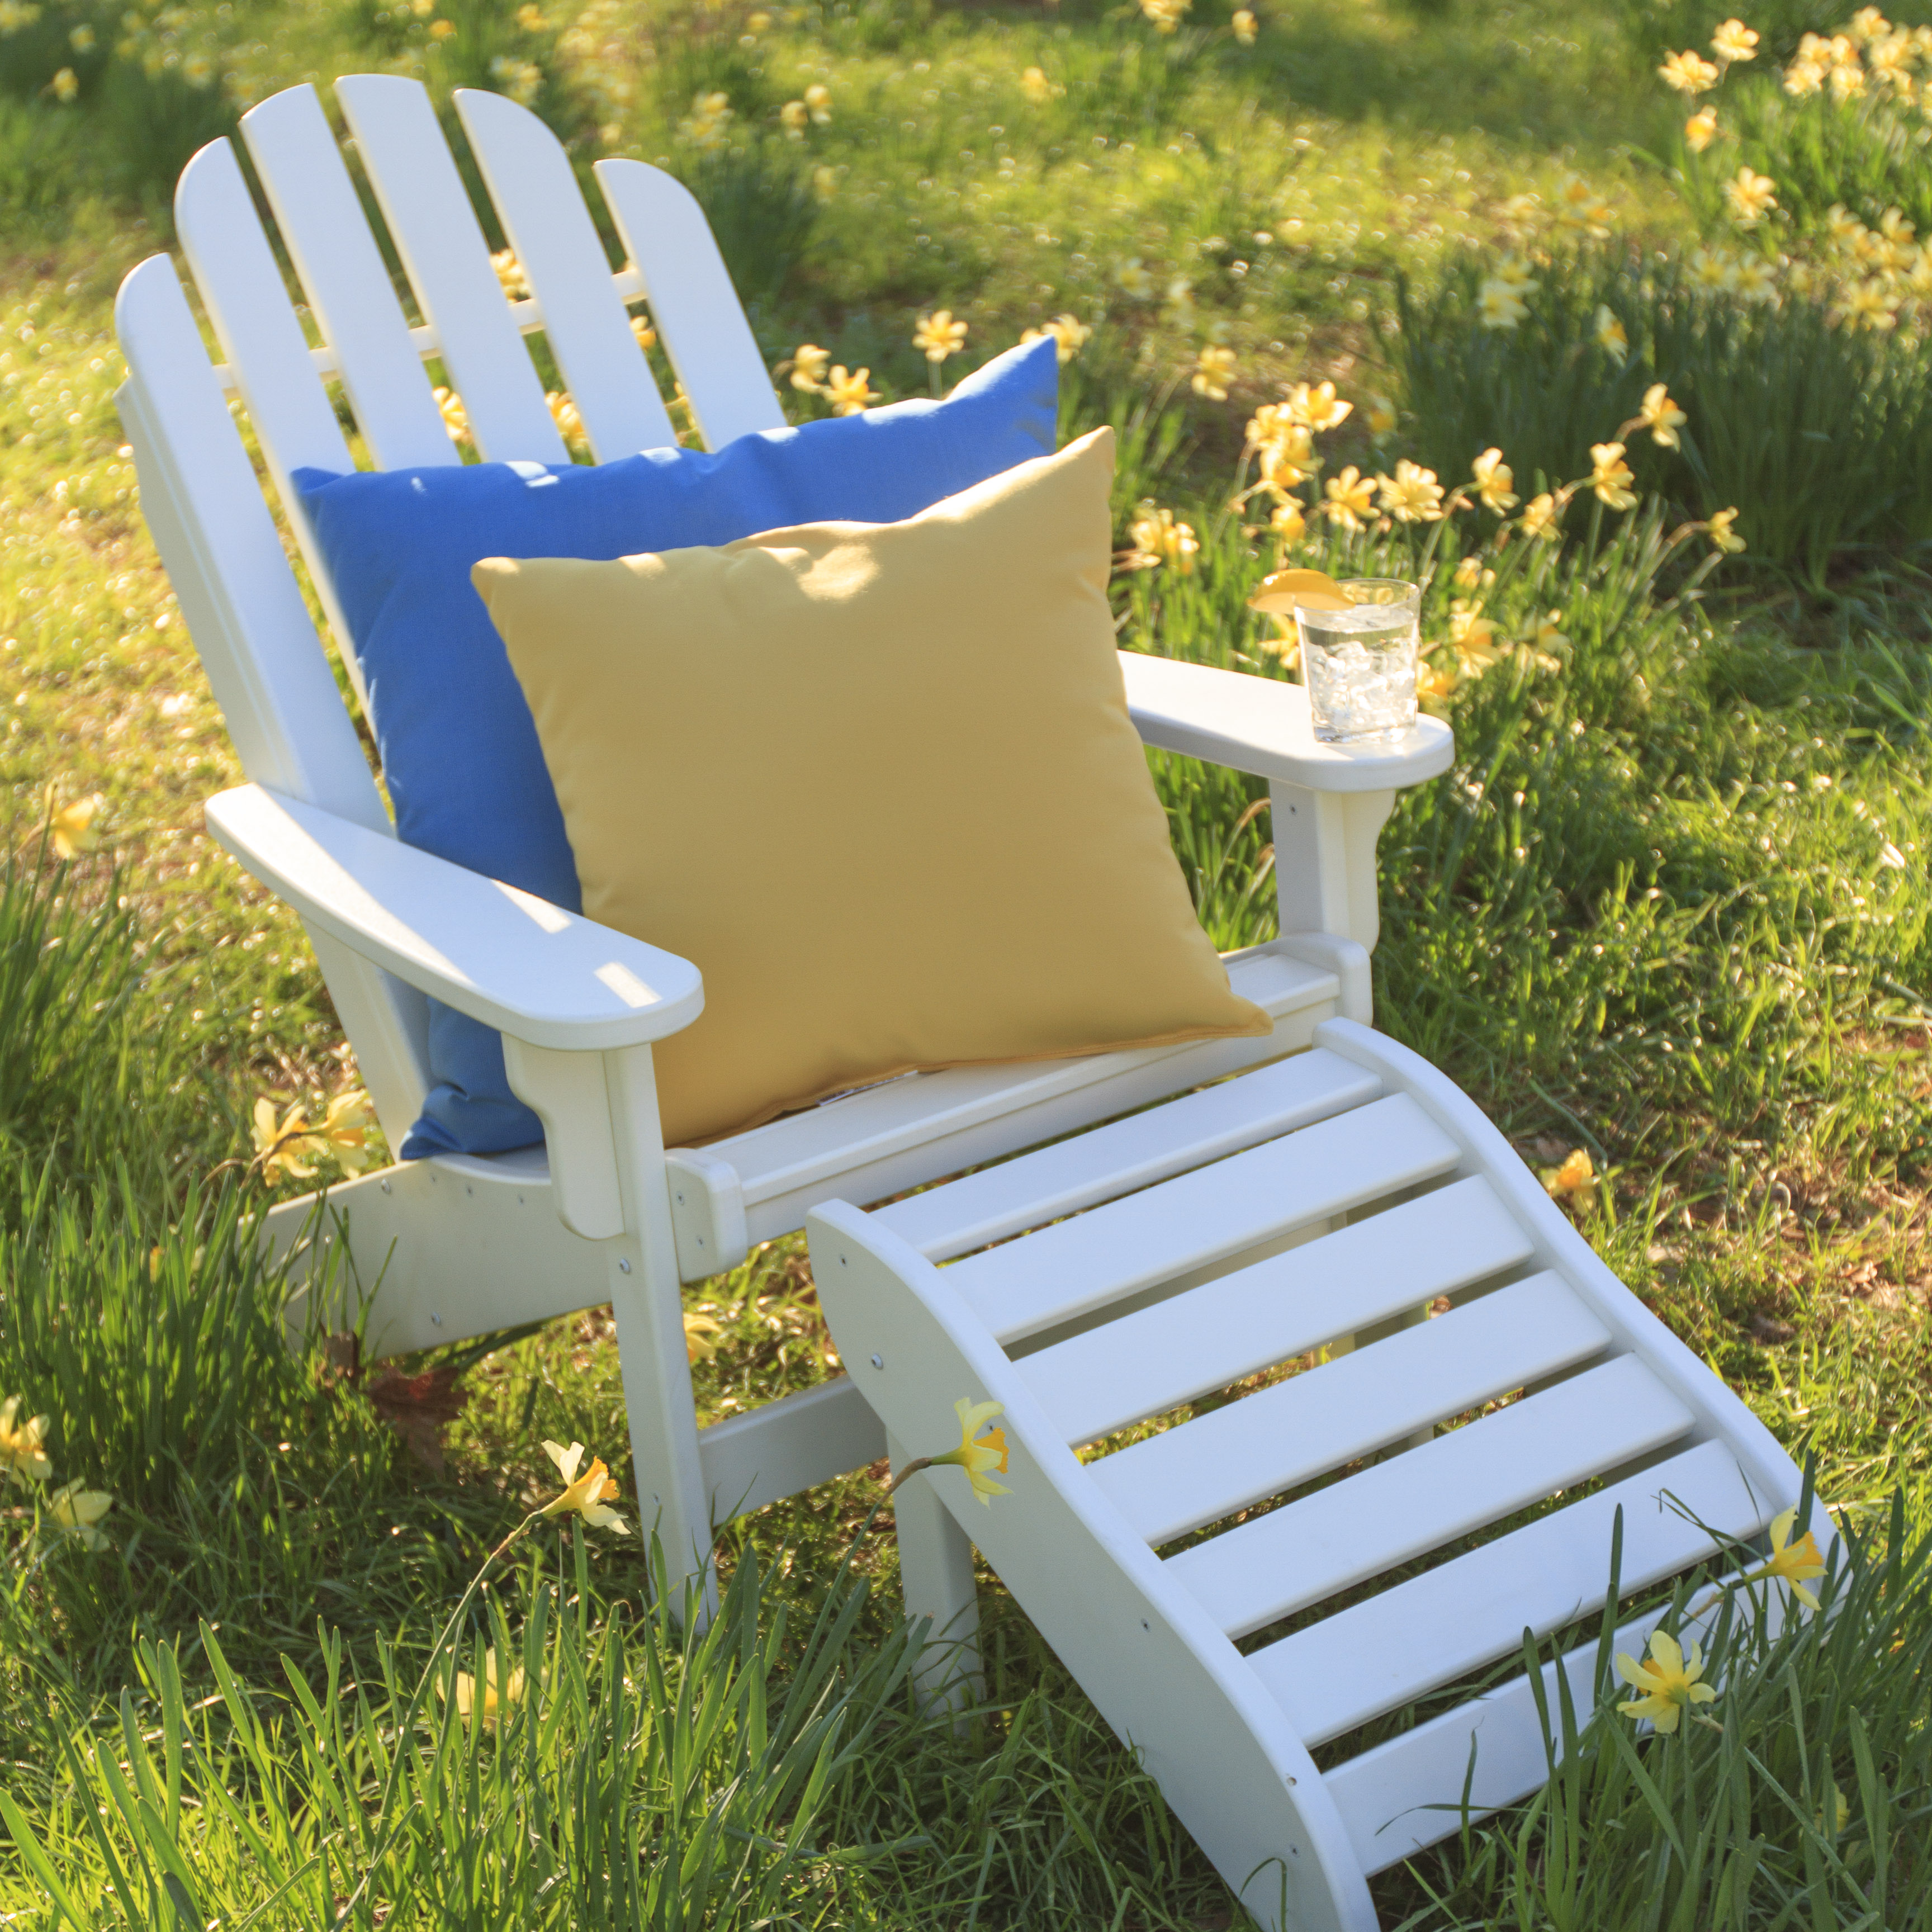 Designed for Outdoors Introduces USA Made Adirondack